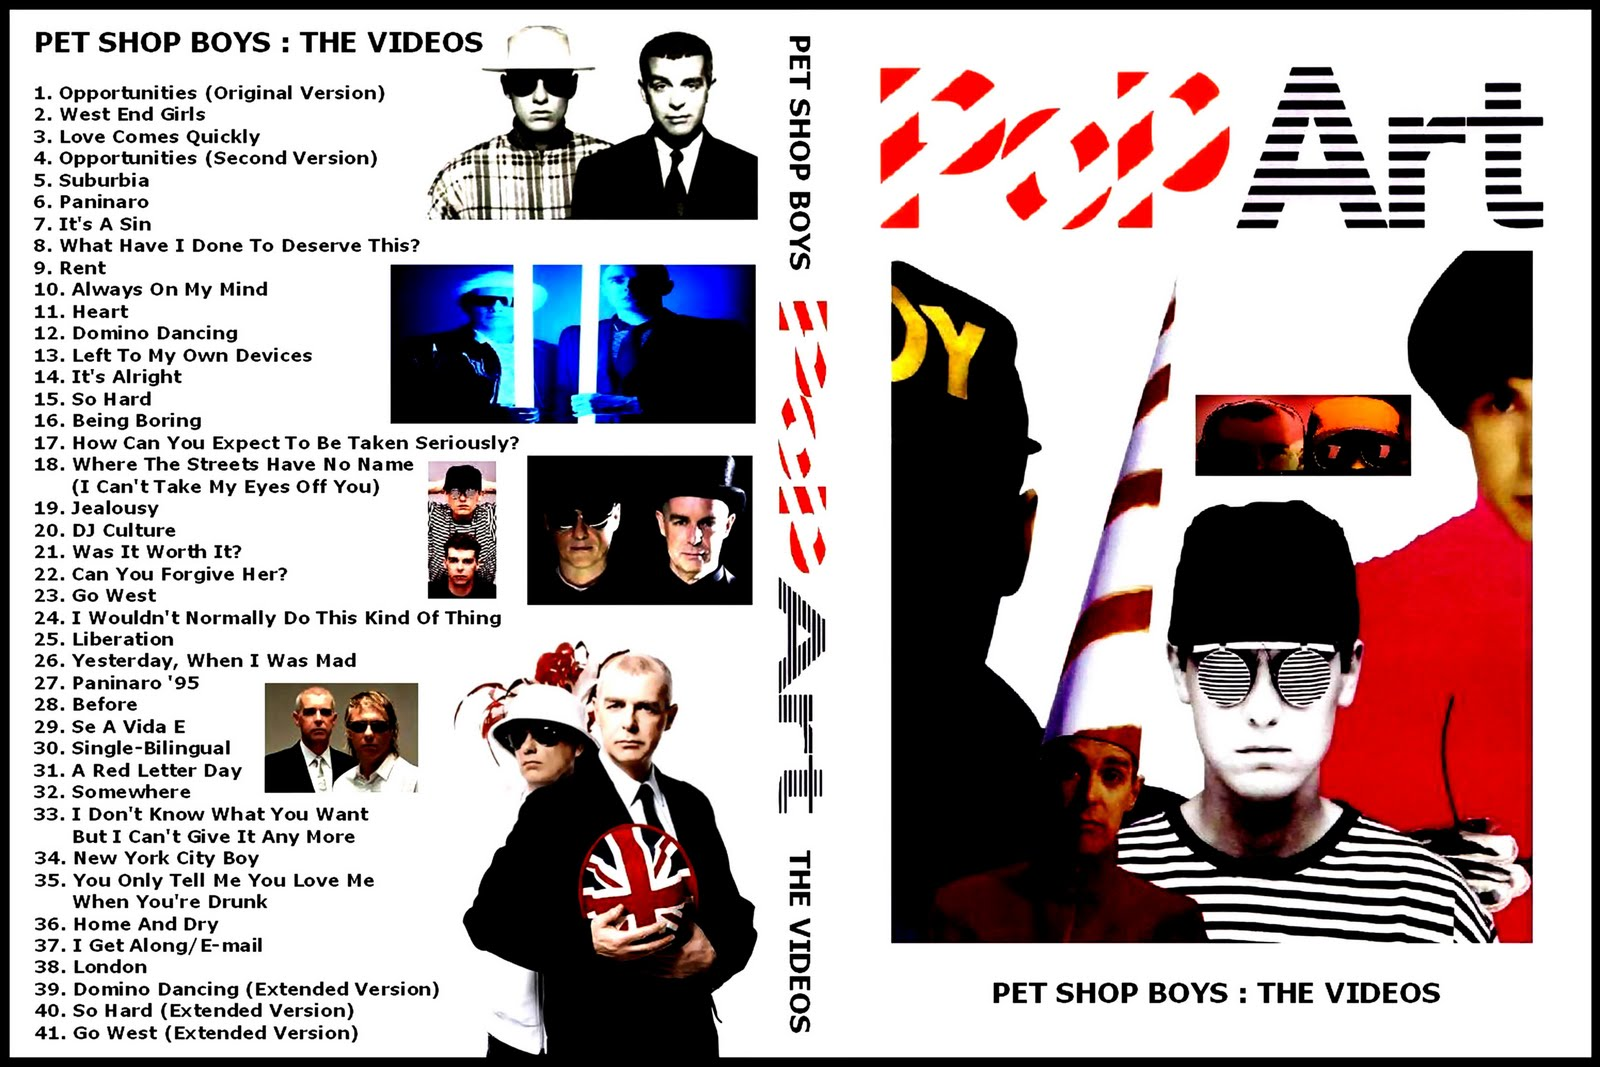 http://1.bp.blogspot.com/-yA8lRteBV9s/UCFnXLr5TuI/AAAAAAAAC58/6s_5LS56gWk/s1600/Pet_Shop_Boys___Pop_Art_The_Videos.jpg